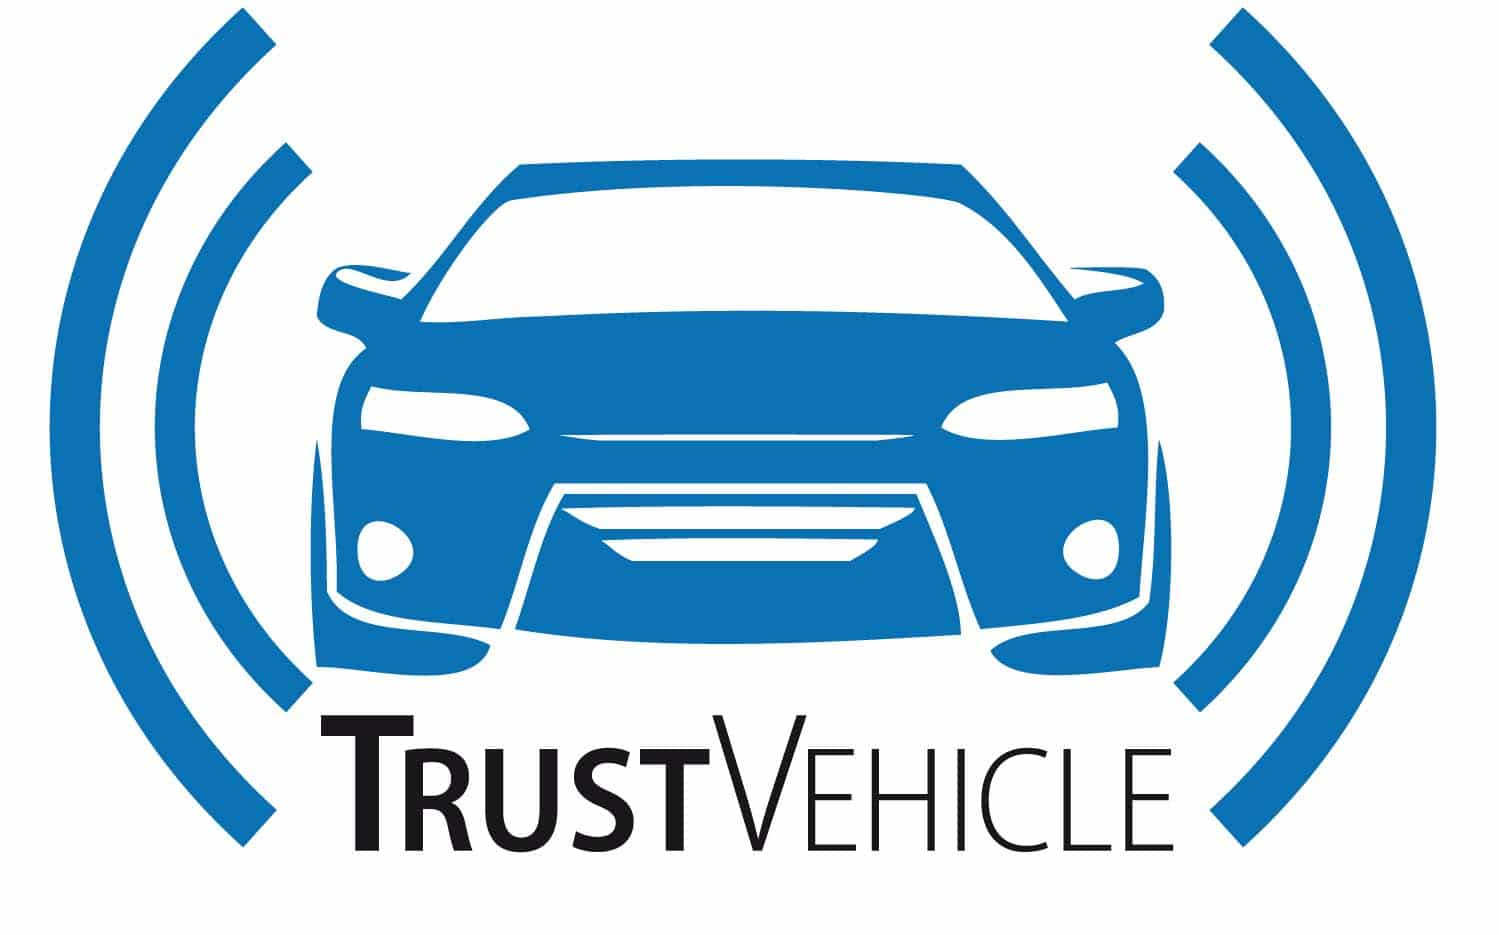 logo trustvehicle